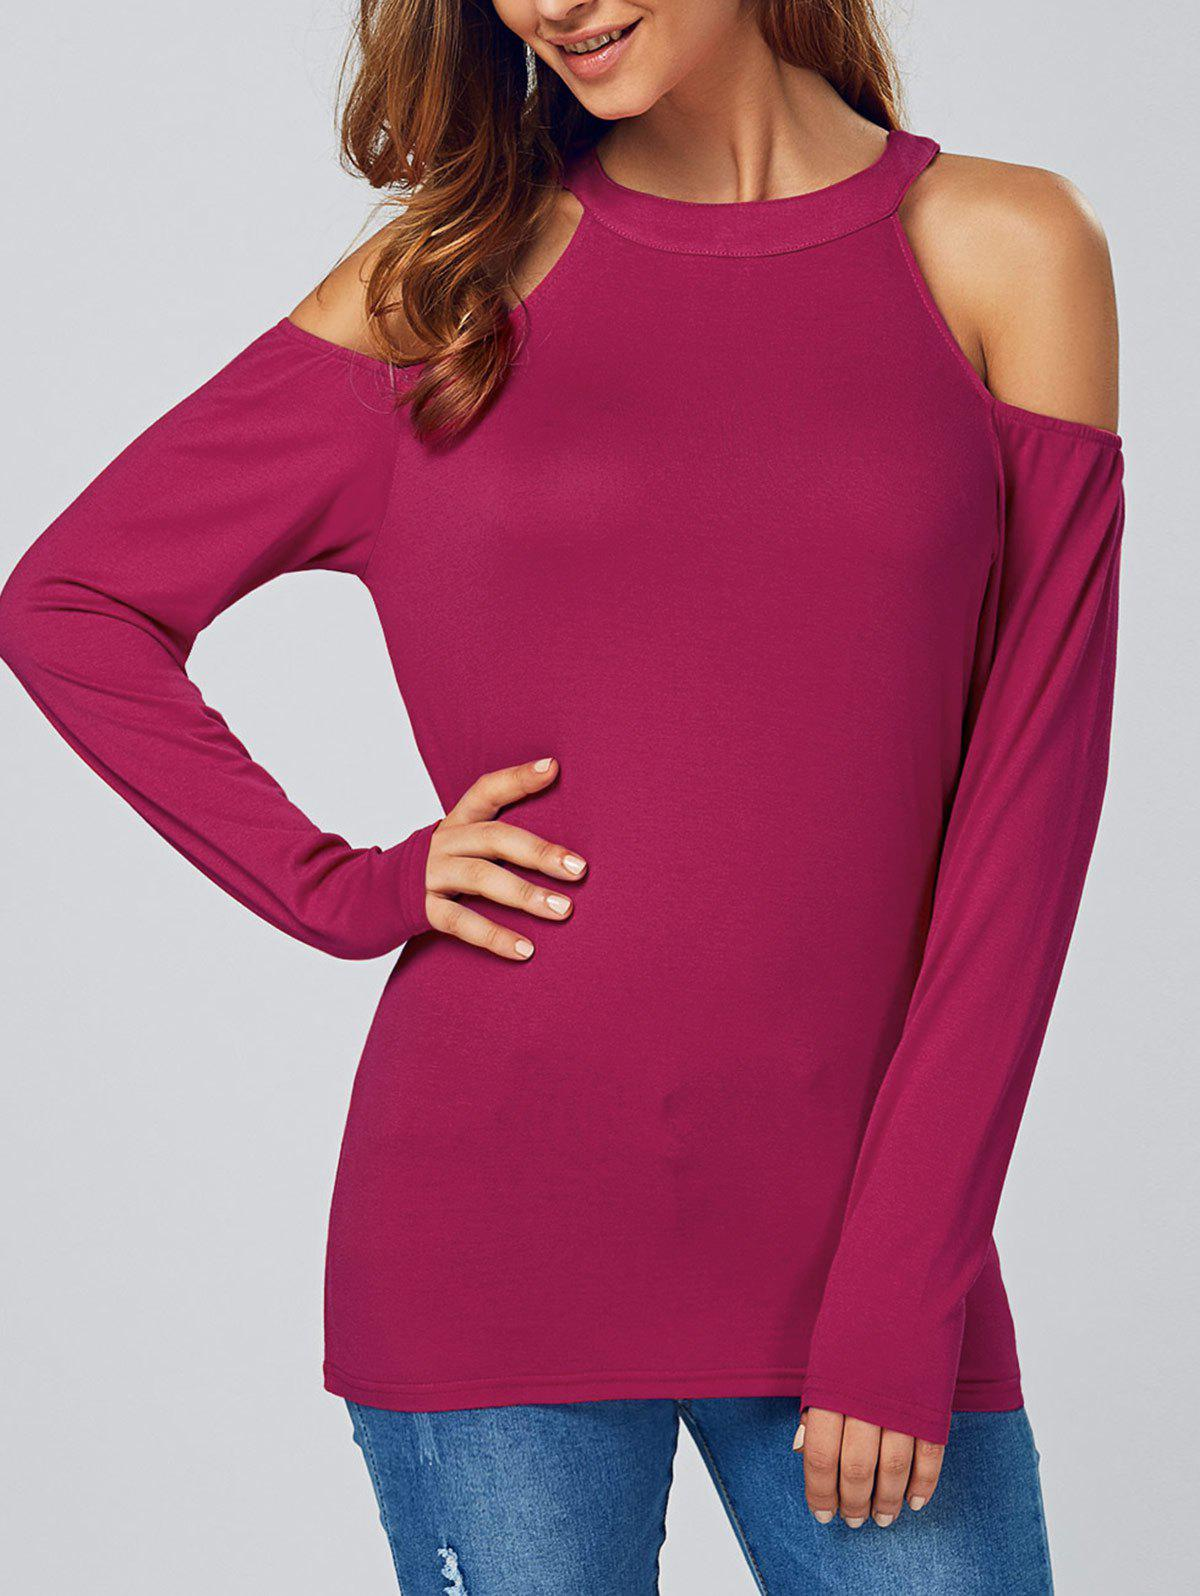 Open Shoulder Long Sleeve T-Shirt - ROSE RED XL